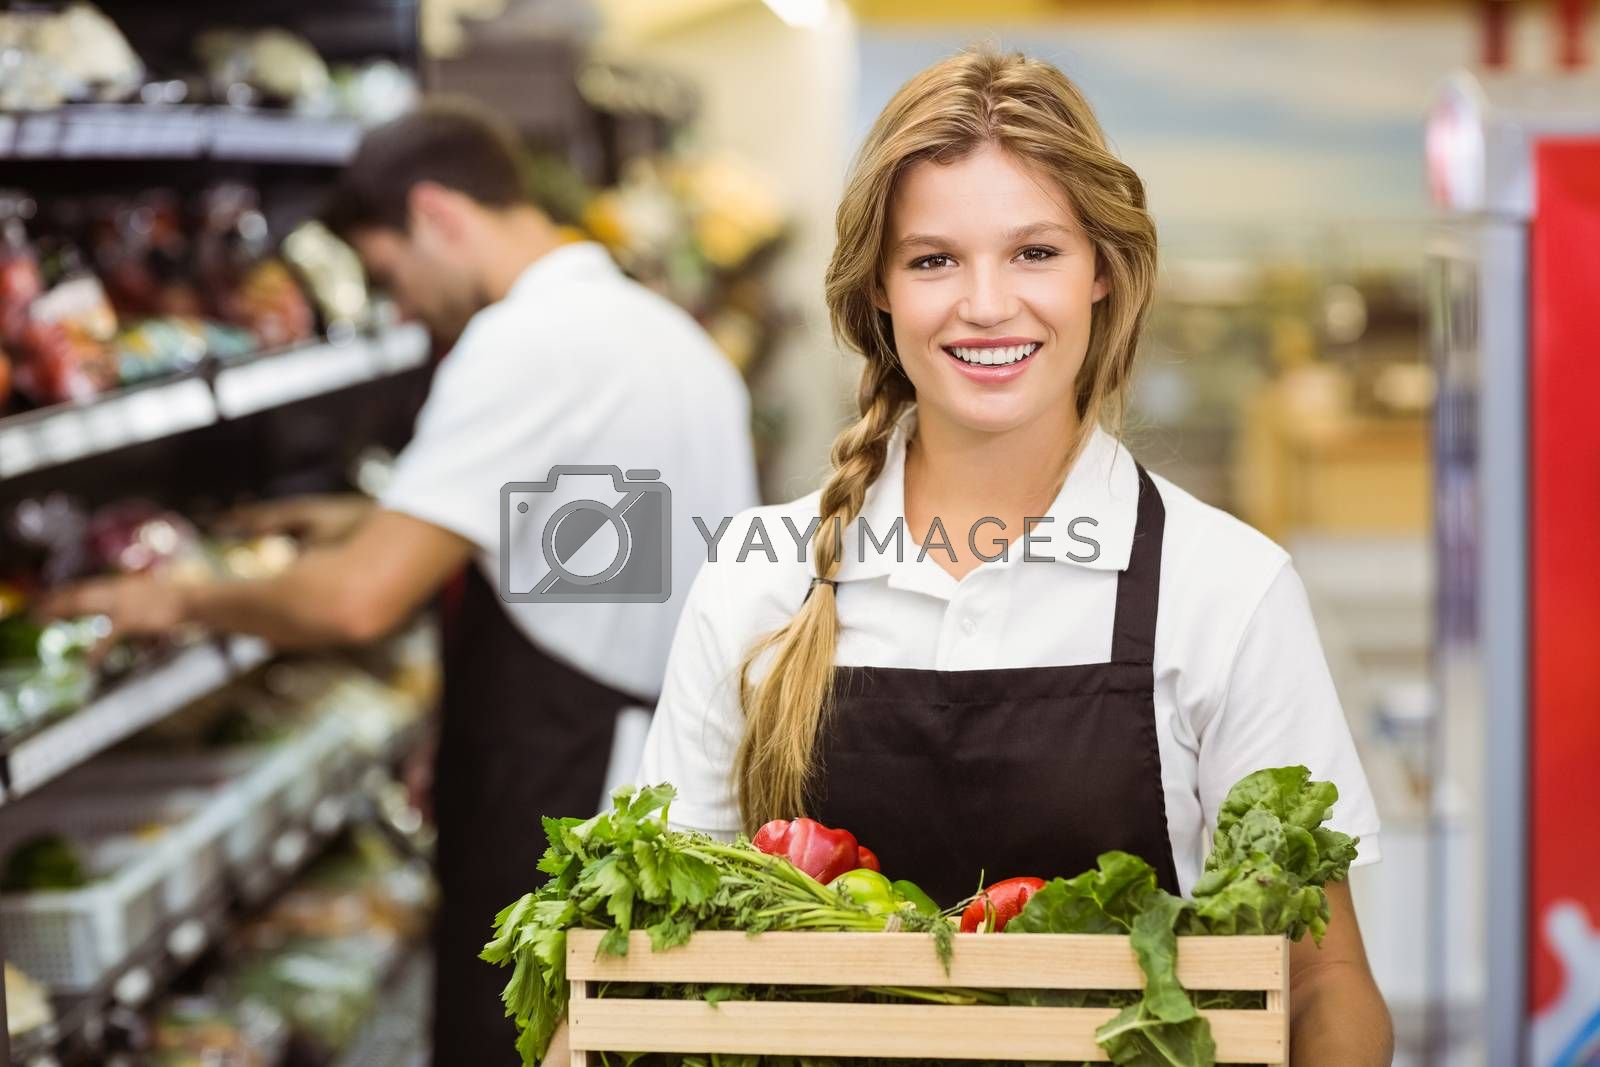 Royalty free image of Portrait of smiling staff woman holding a box with fresh vegetables  by Wavebreakmedia